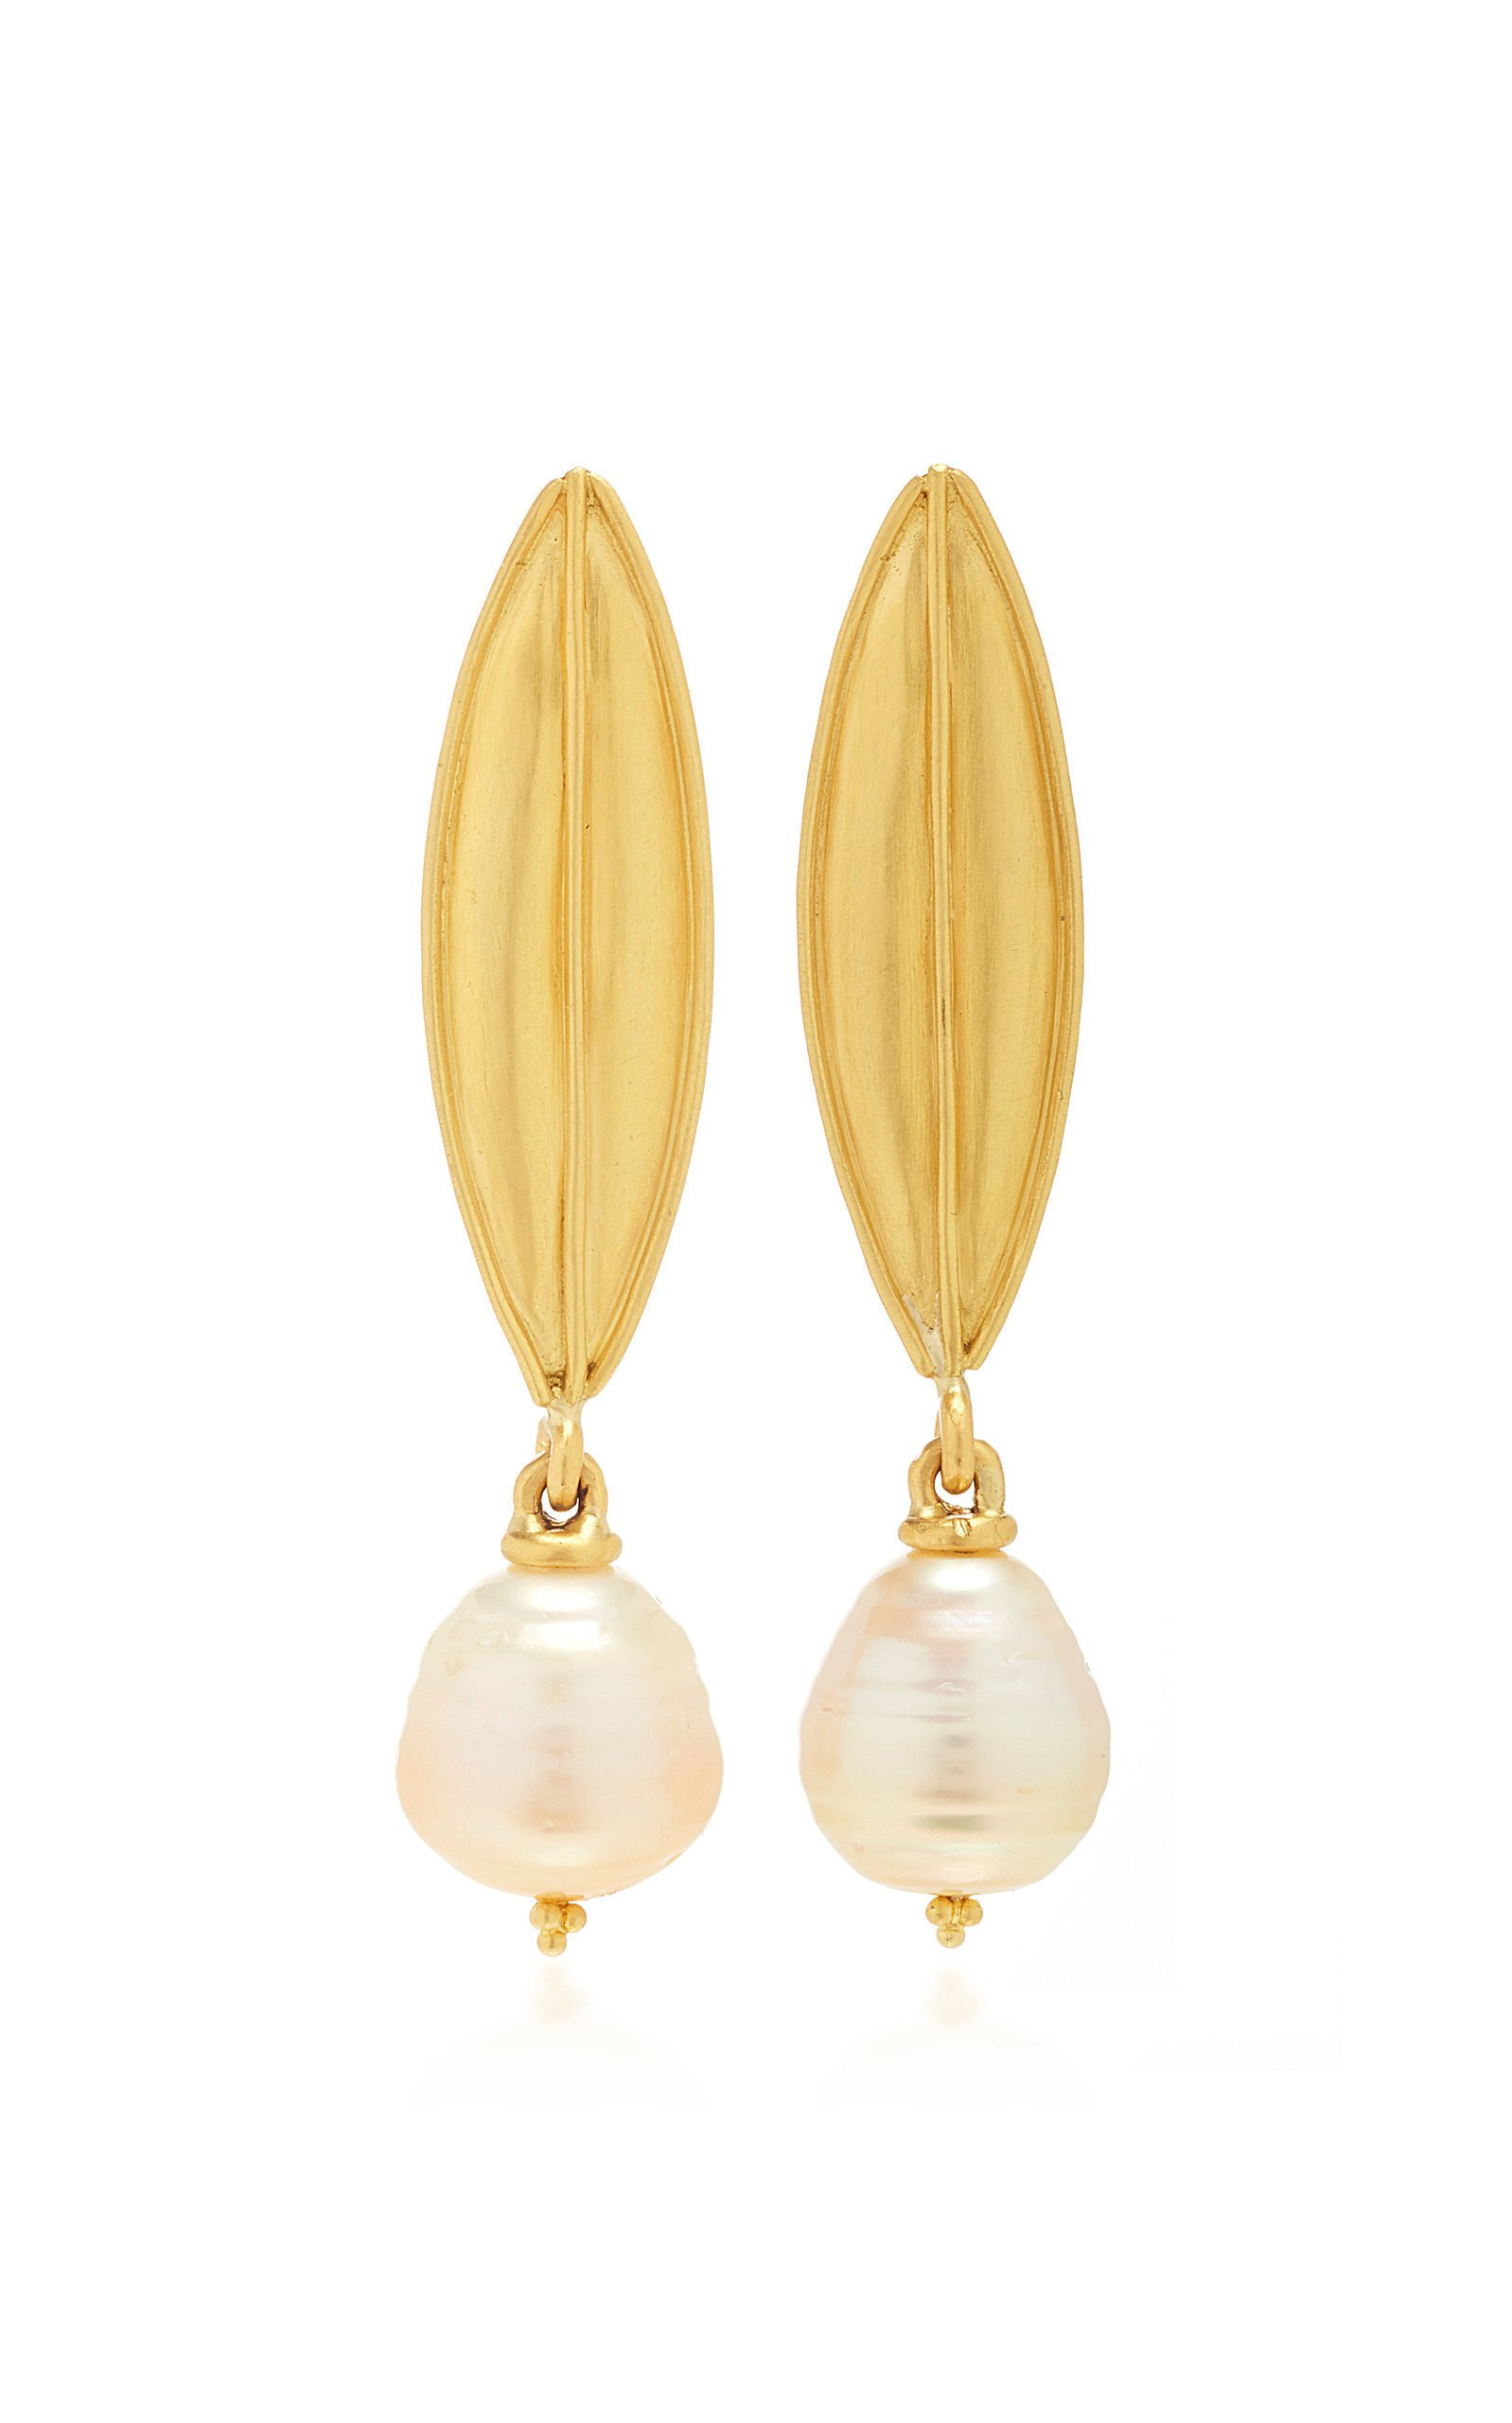 Prounis Laurel Drop Earrings with South Sea Pearl